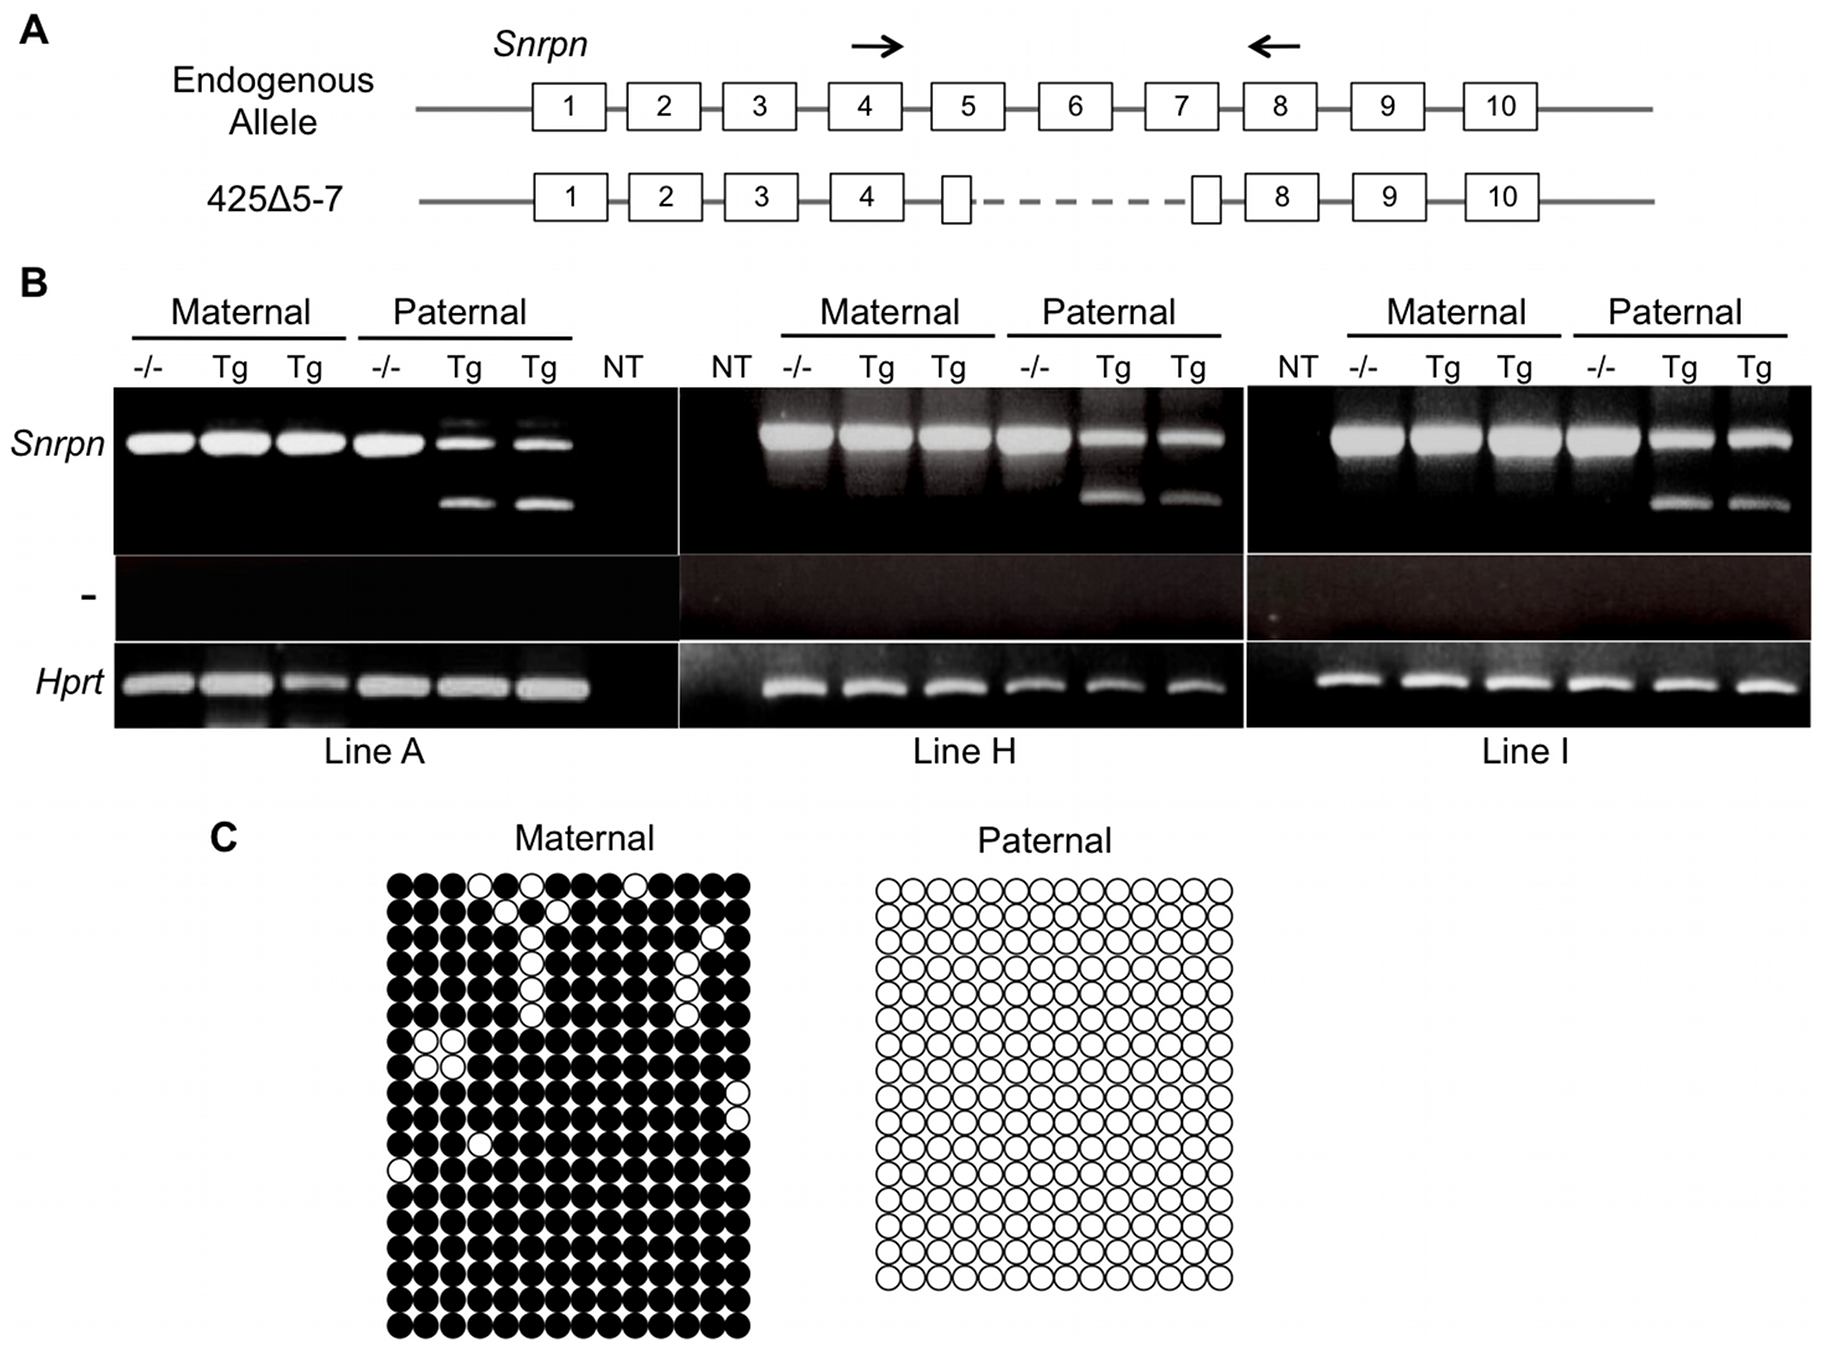 Analysis of imprinting for the 425Δ5-7 BAC transgene.